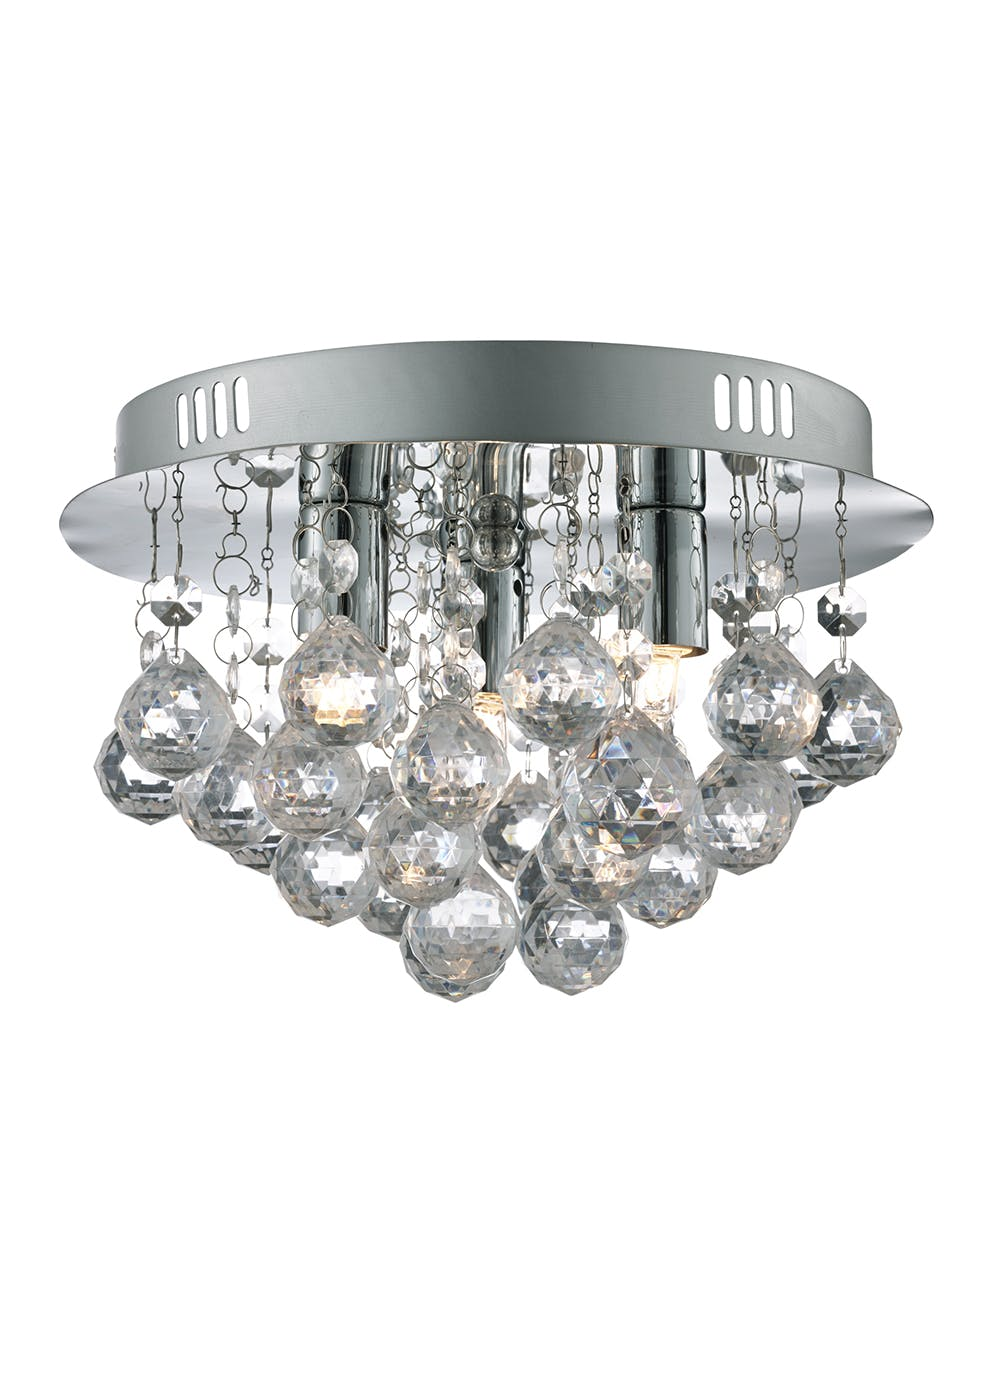 vintage black ceiling lighting lights mount unitarylighting barn products with semi flush metal light